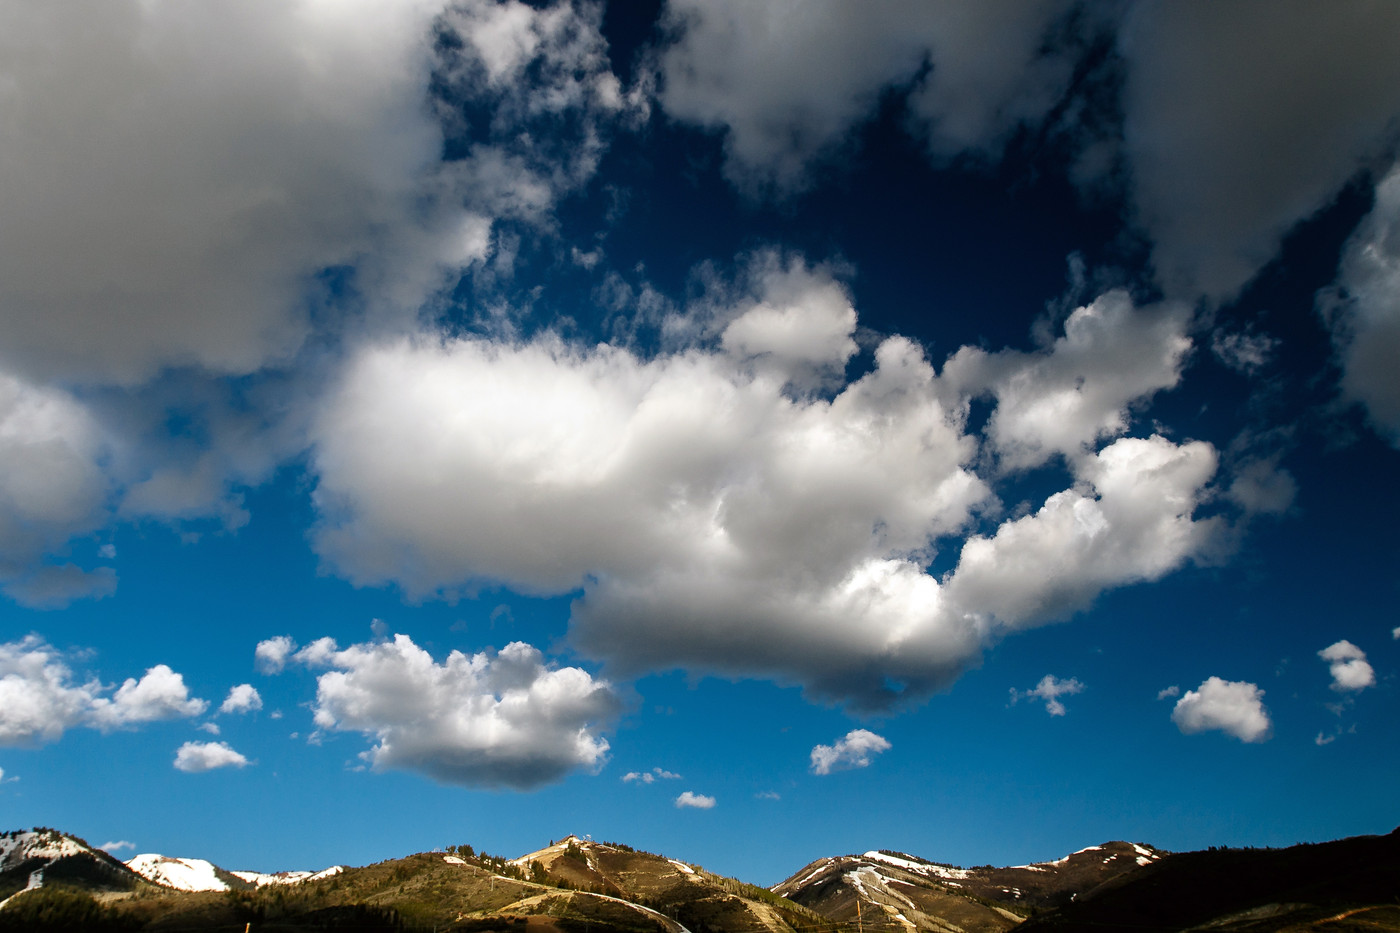 Cloudy skies over mountain tops.